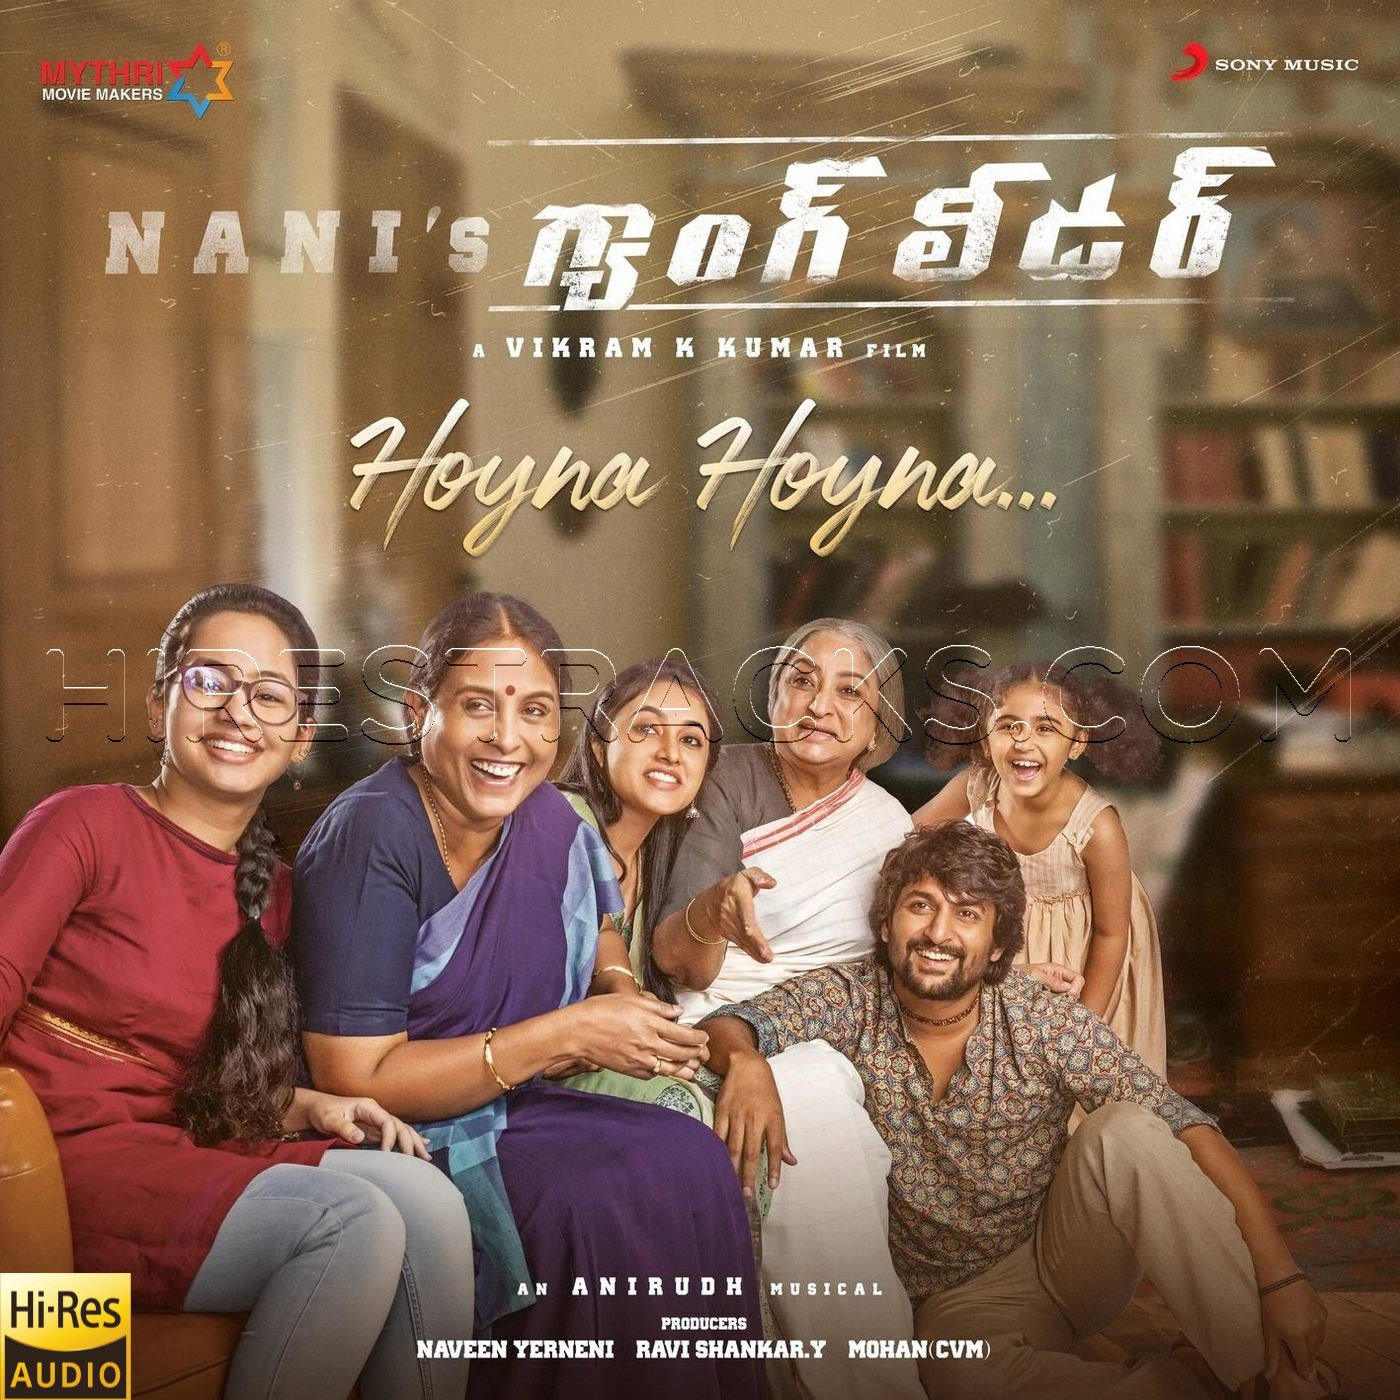 Hoyna Hoyna (From Gang Leader) (2019) (Anirudh Ravichander) (Sony Music) [24 BIT – 48 KHZ] [Digital-DL-FLAC]